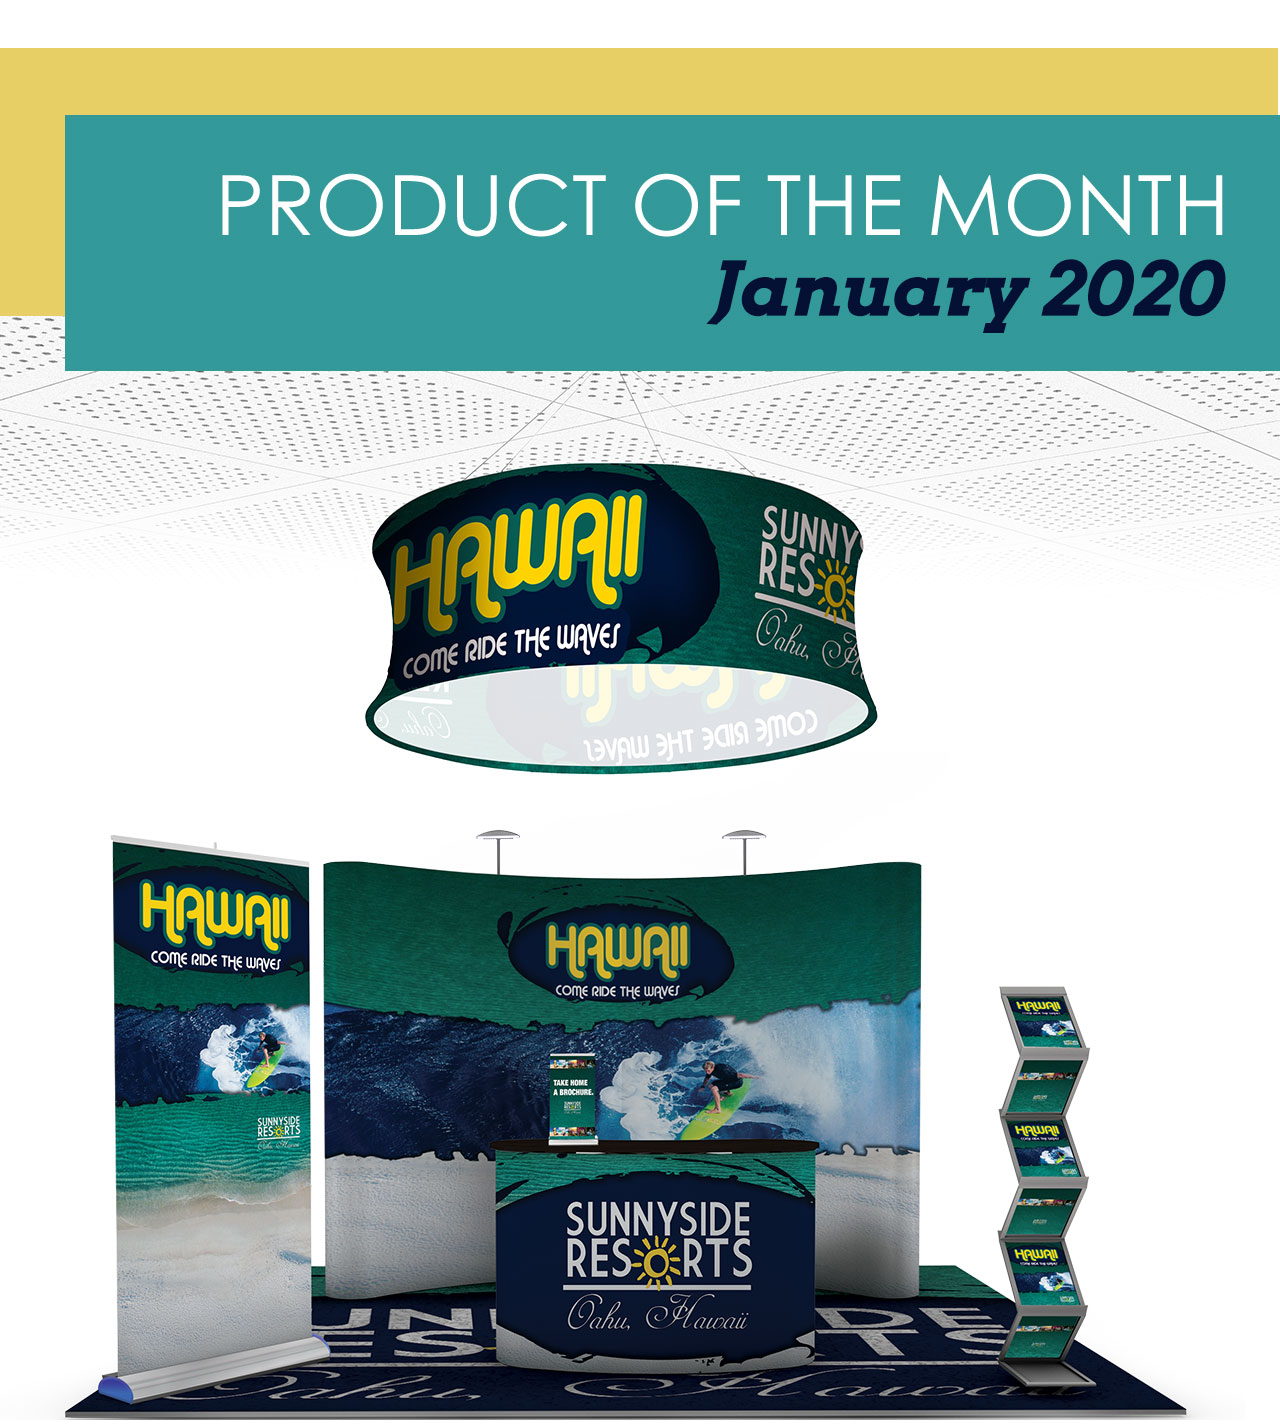 PRODUCT OF THE MONTH January 2020